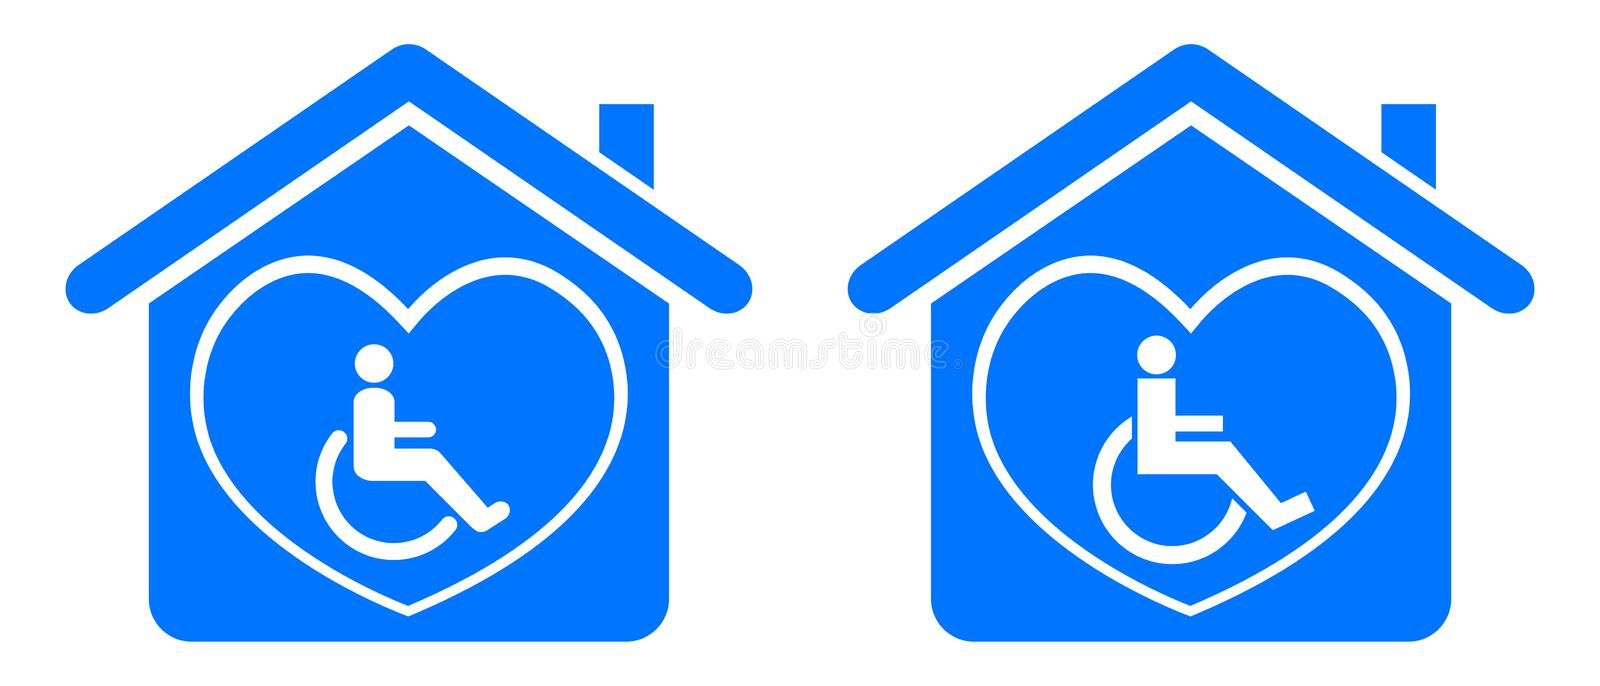 Disable home stock illustration